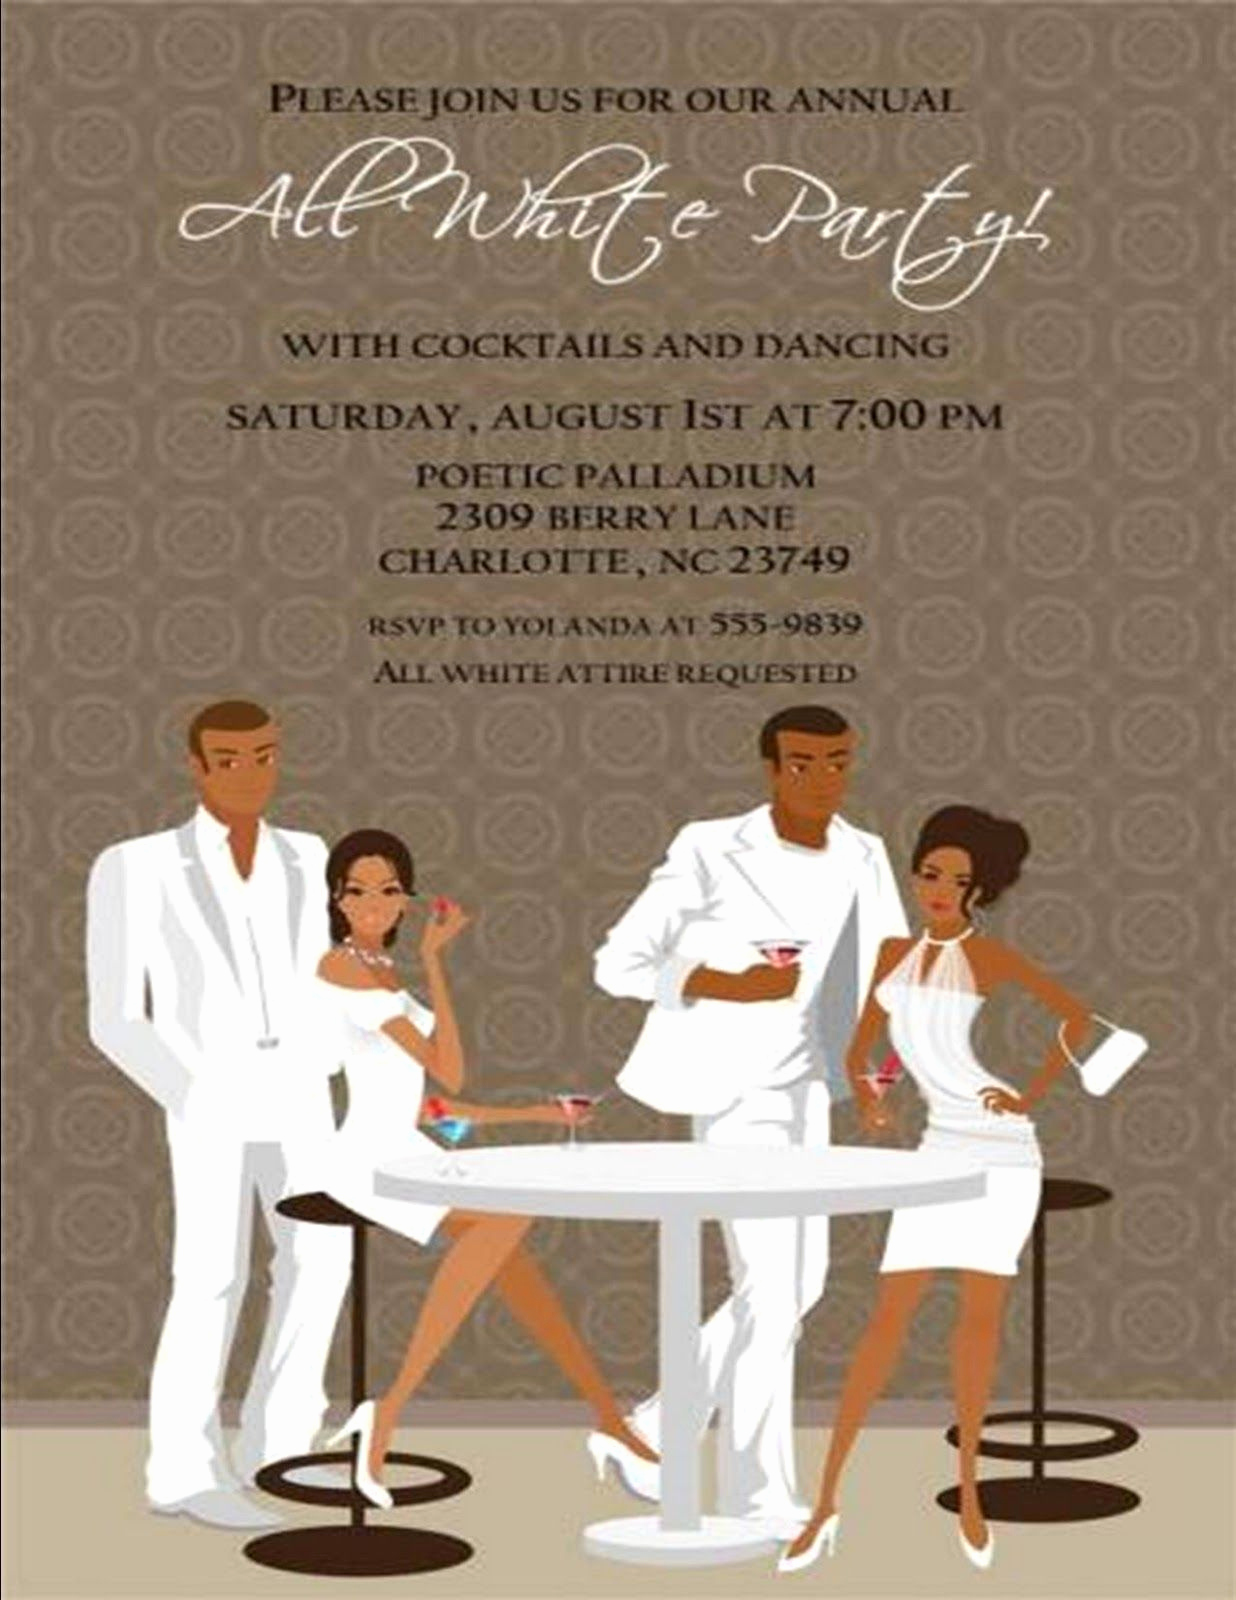 White Party Invitation Ideas Lovely All White Party On Pinterest